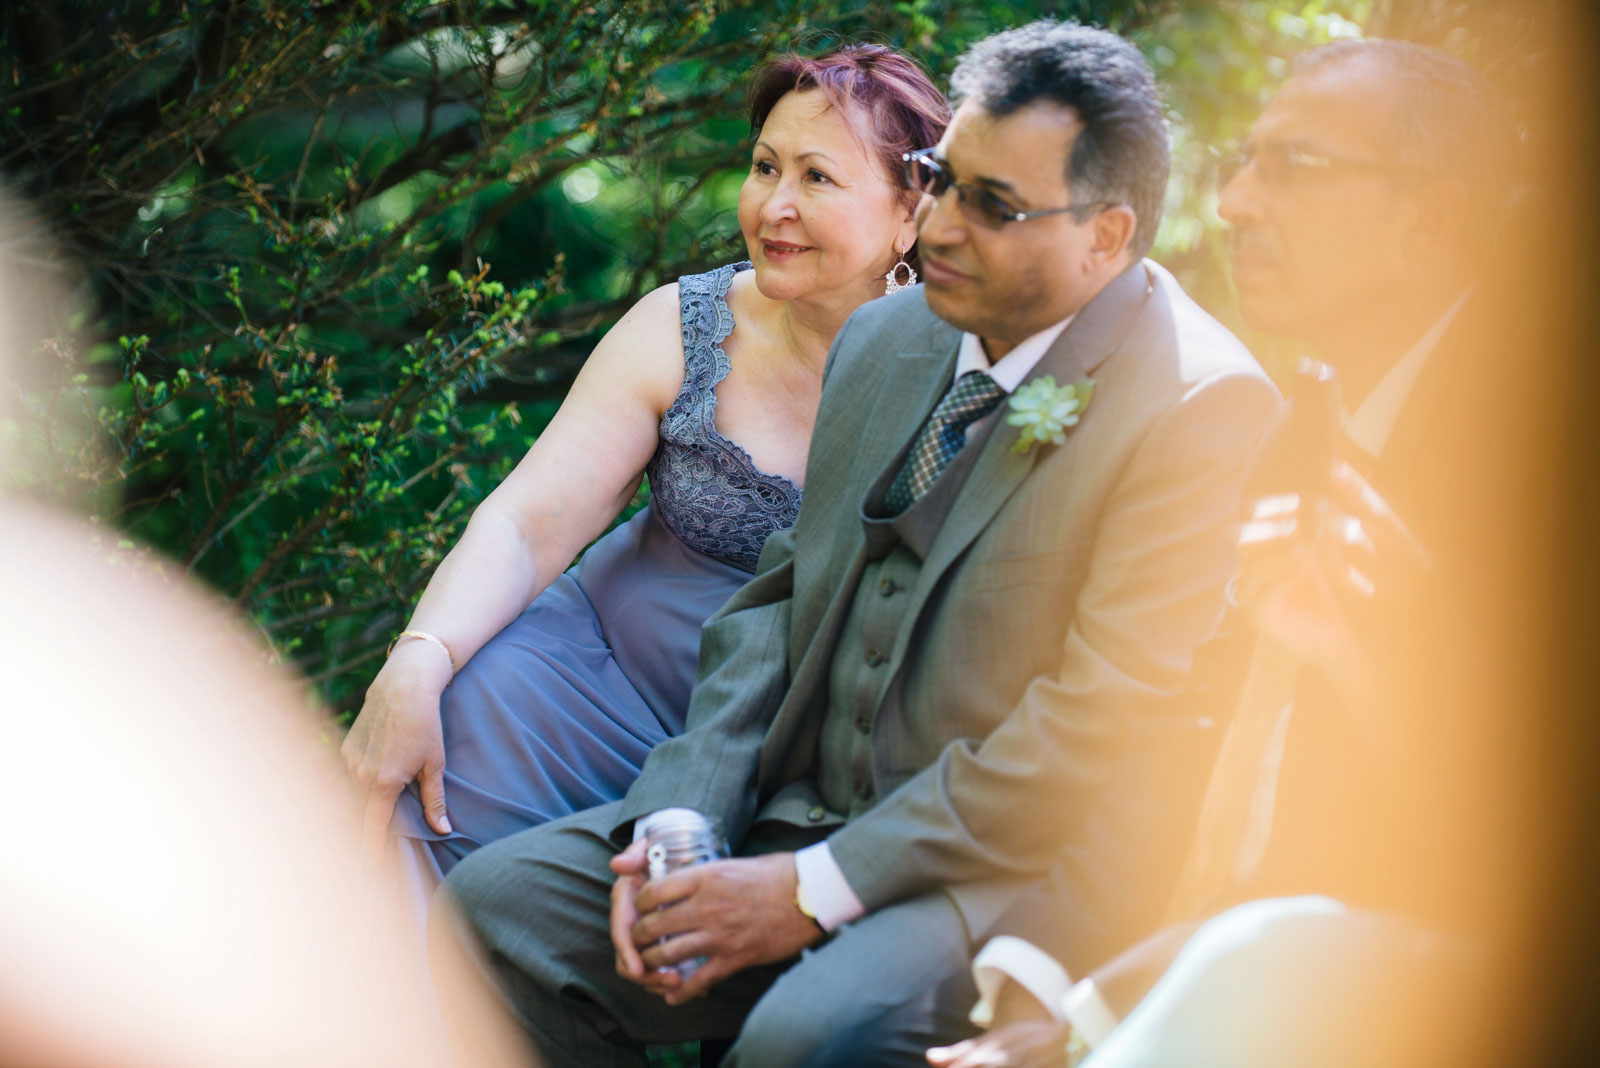 groom's parents reactions while watching wedding ceremony at wildlife sanctuary in Boston